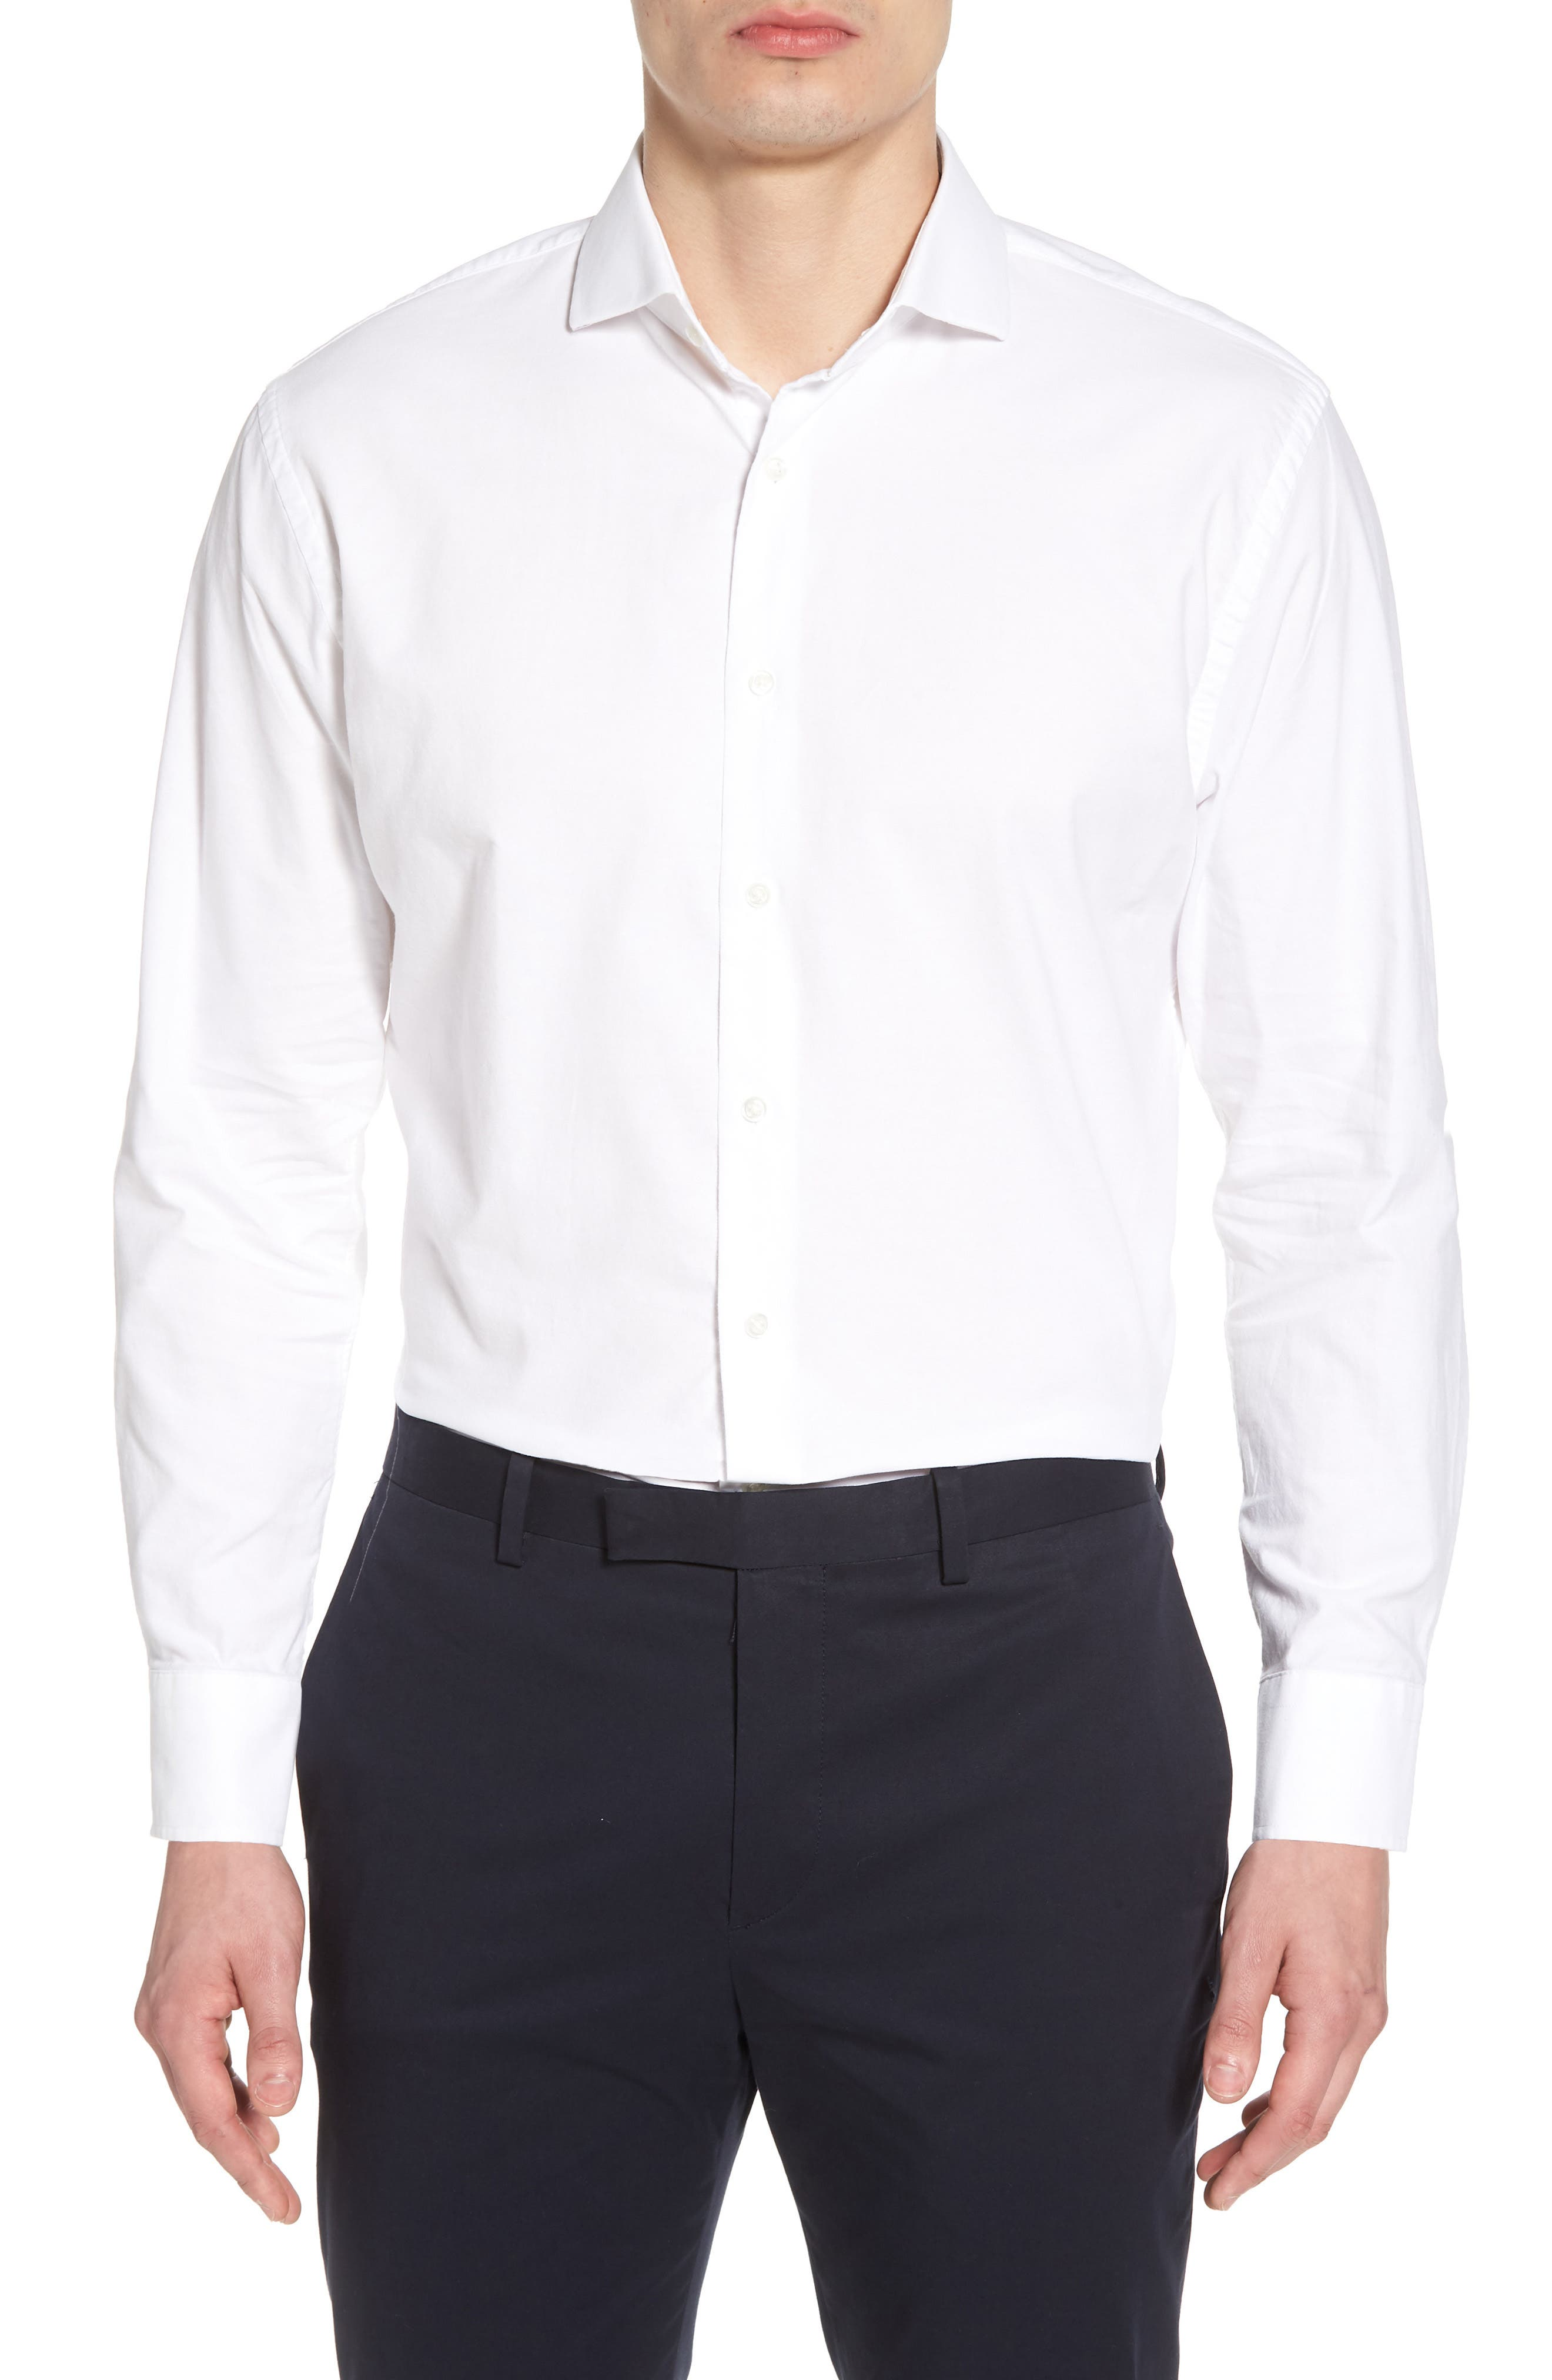 Trim Fit Solid Dress Shirt,                             Main thumbnail 1, color,                             White